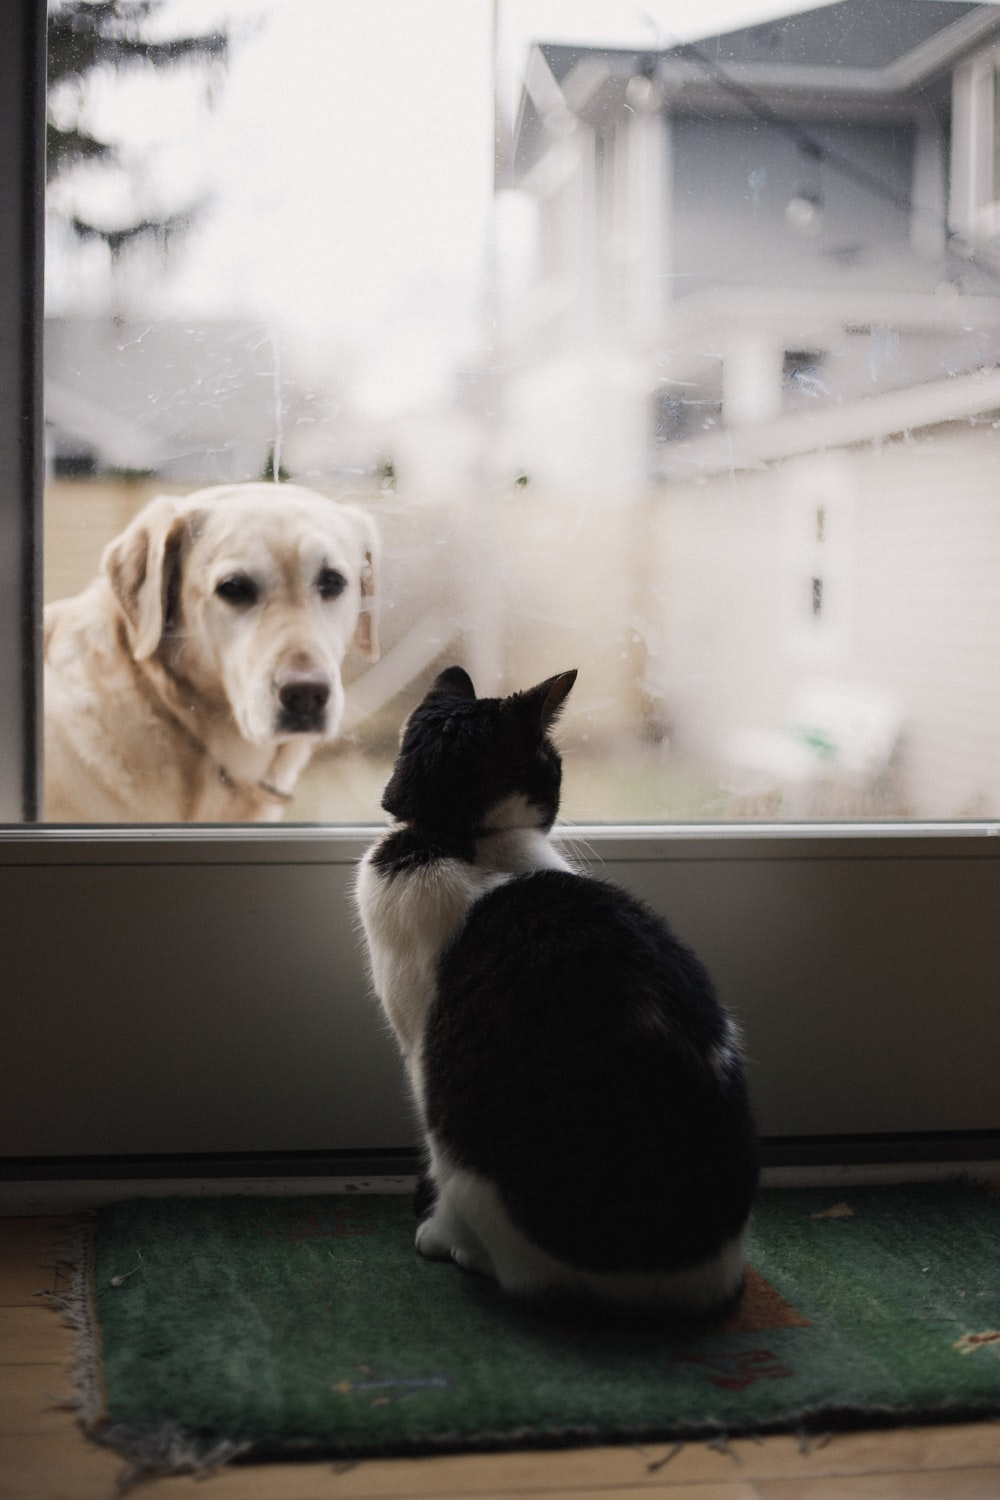 500 Hq Cat And Dog Pictures Download Free Images On Unsplash